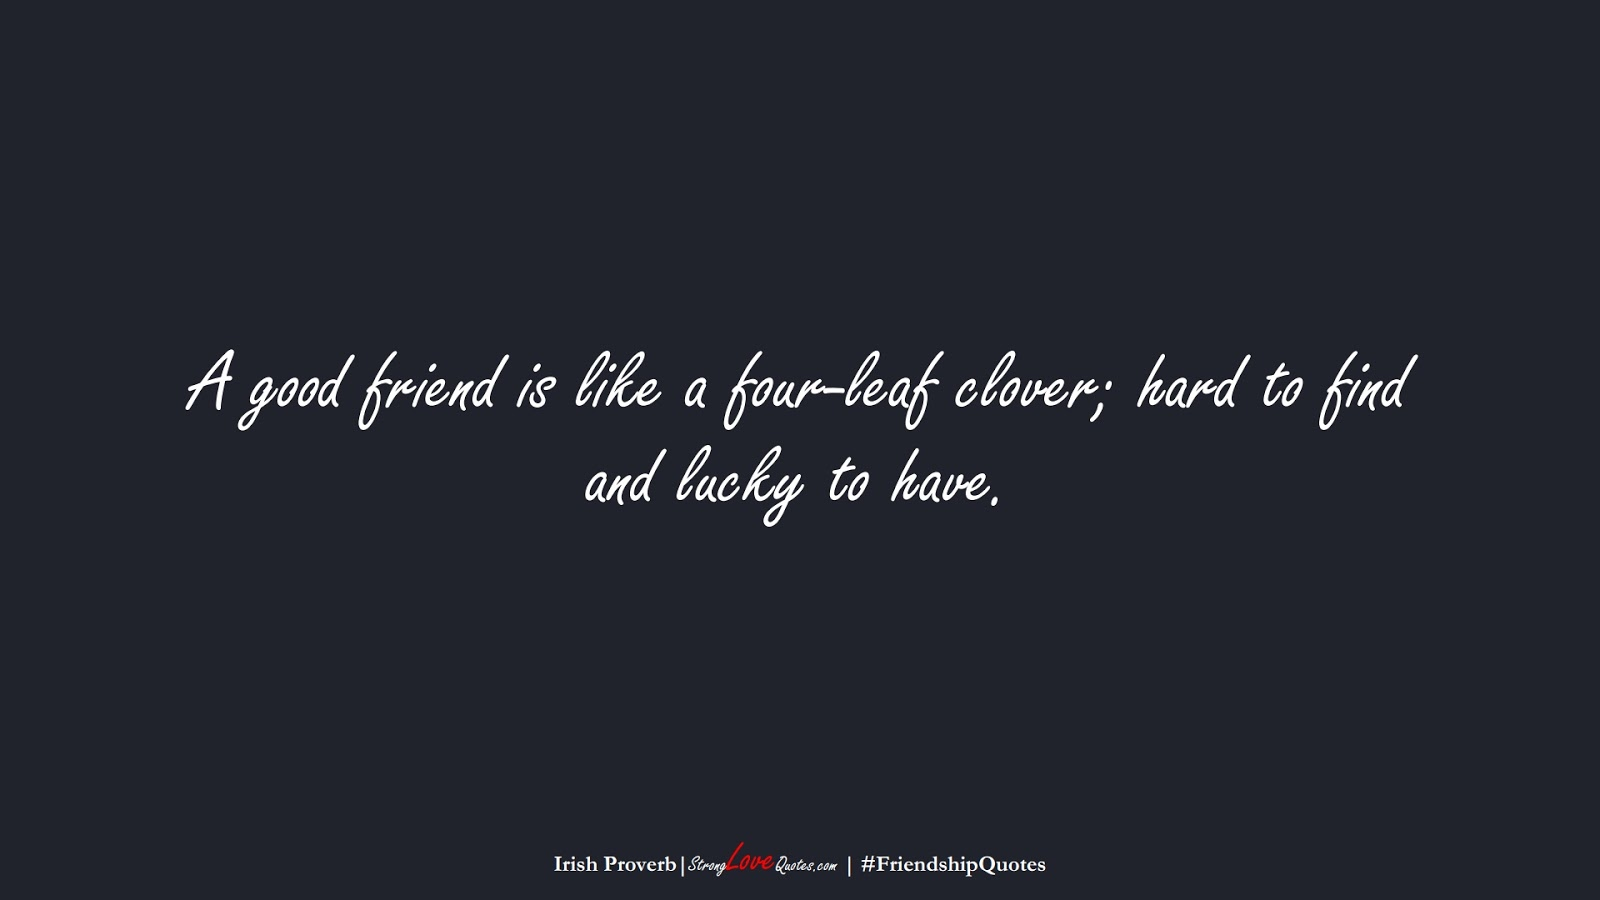 A good friend is like a four-leaf clover; hard to find and lucky to have. (Irish Proverb);  #FriendshipQuotes